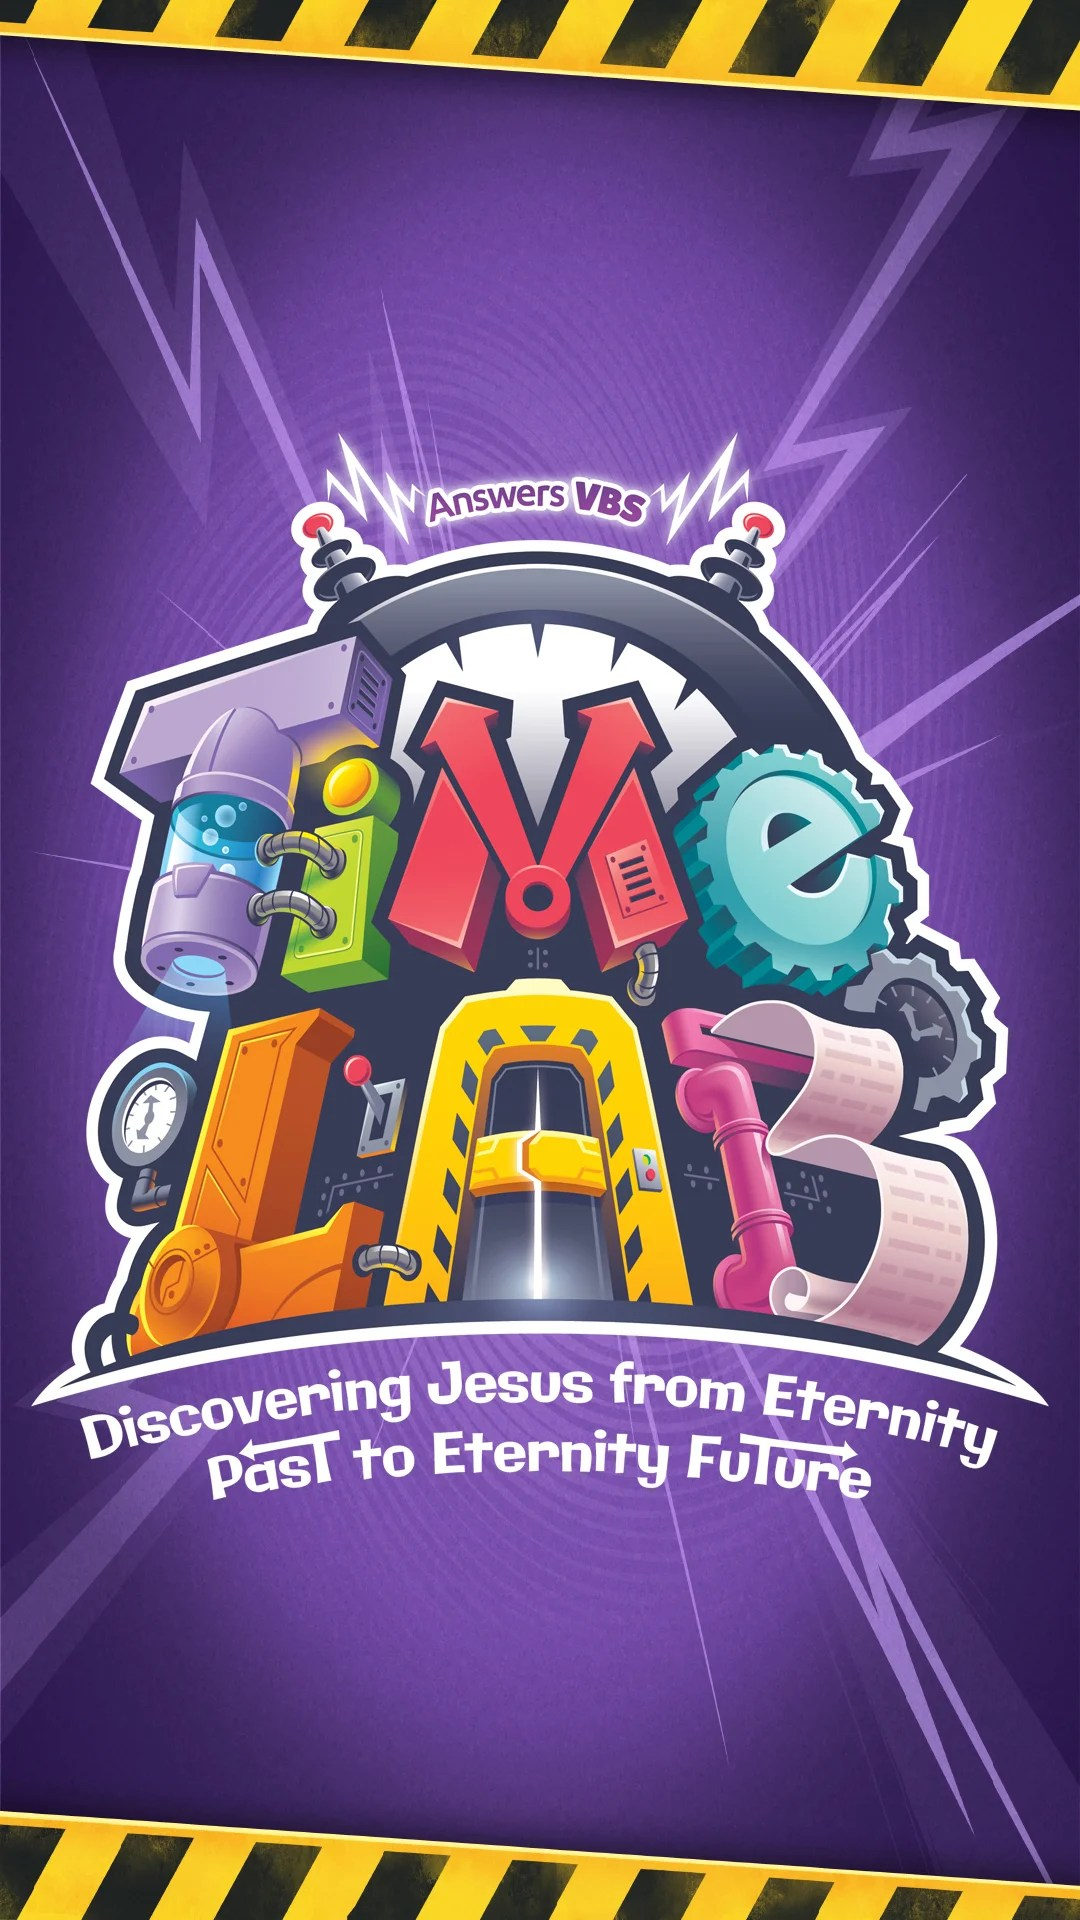 Time Lab Resources Answers VBS 2018